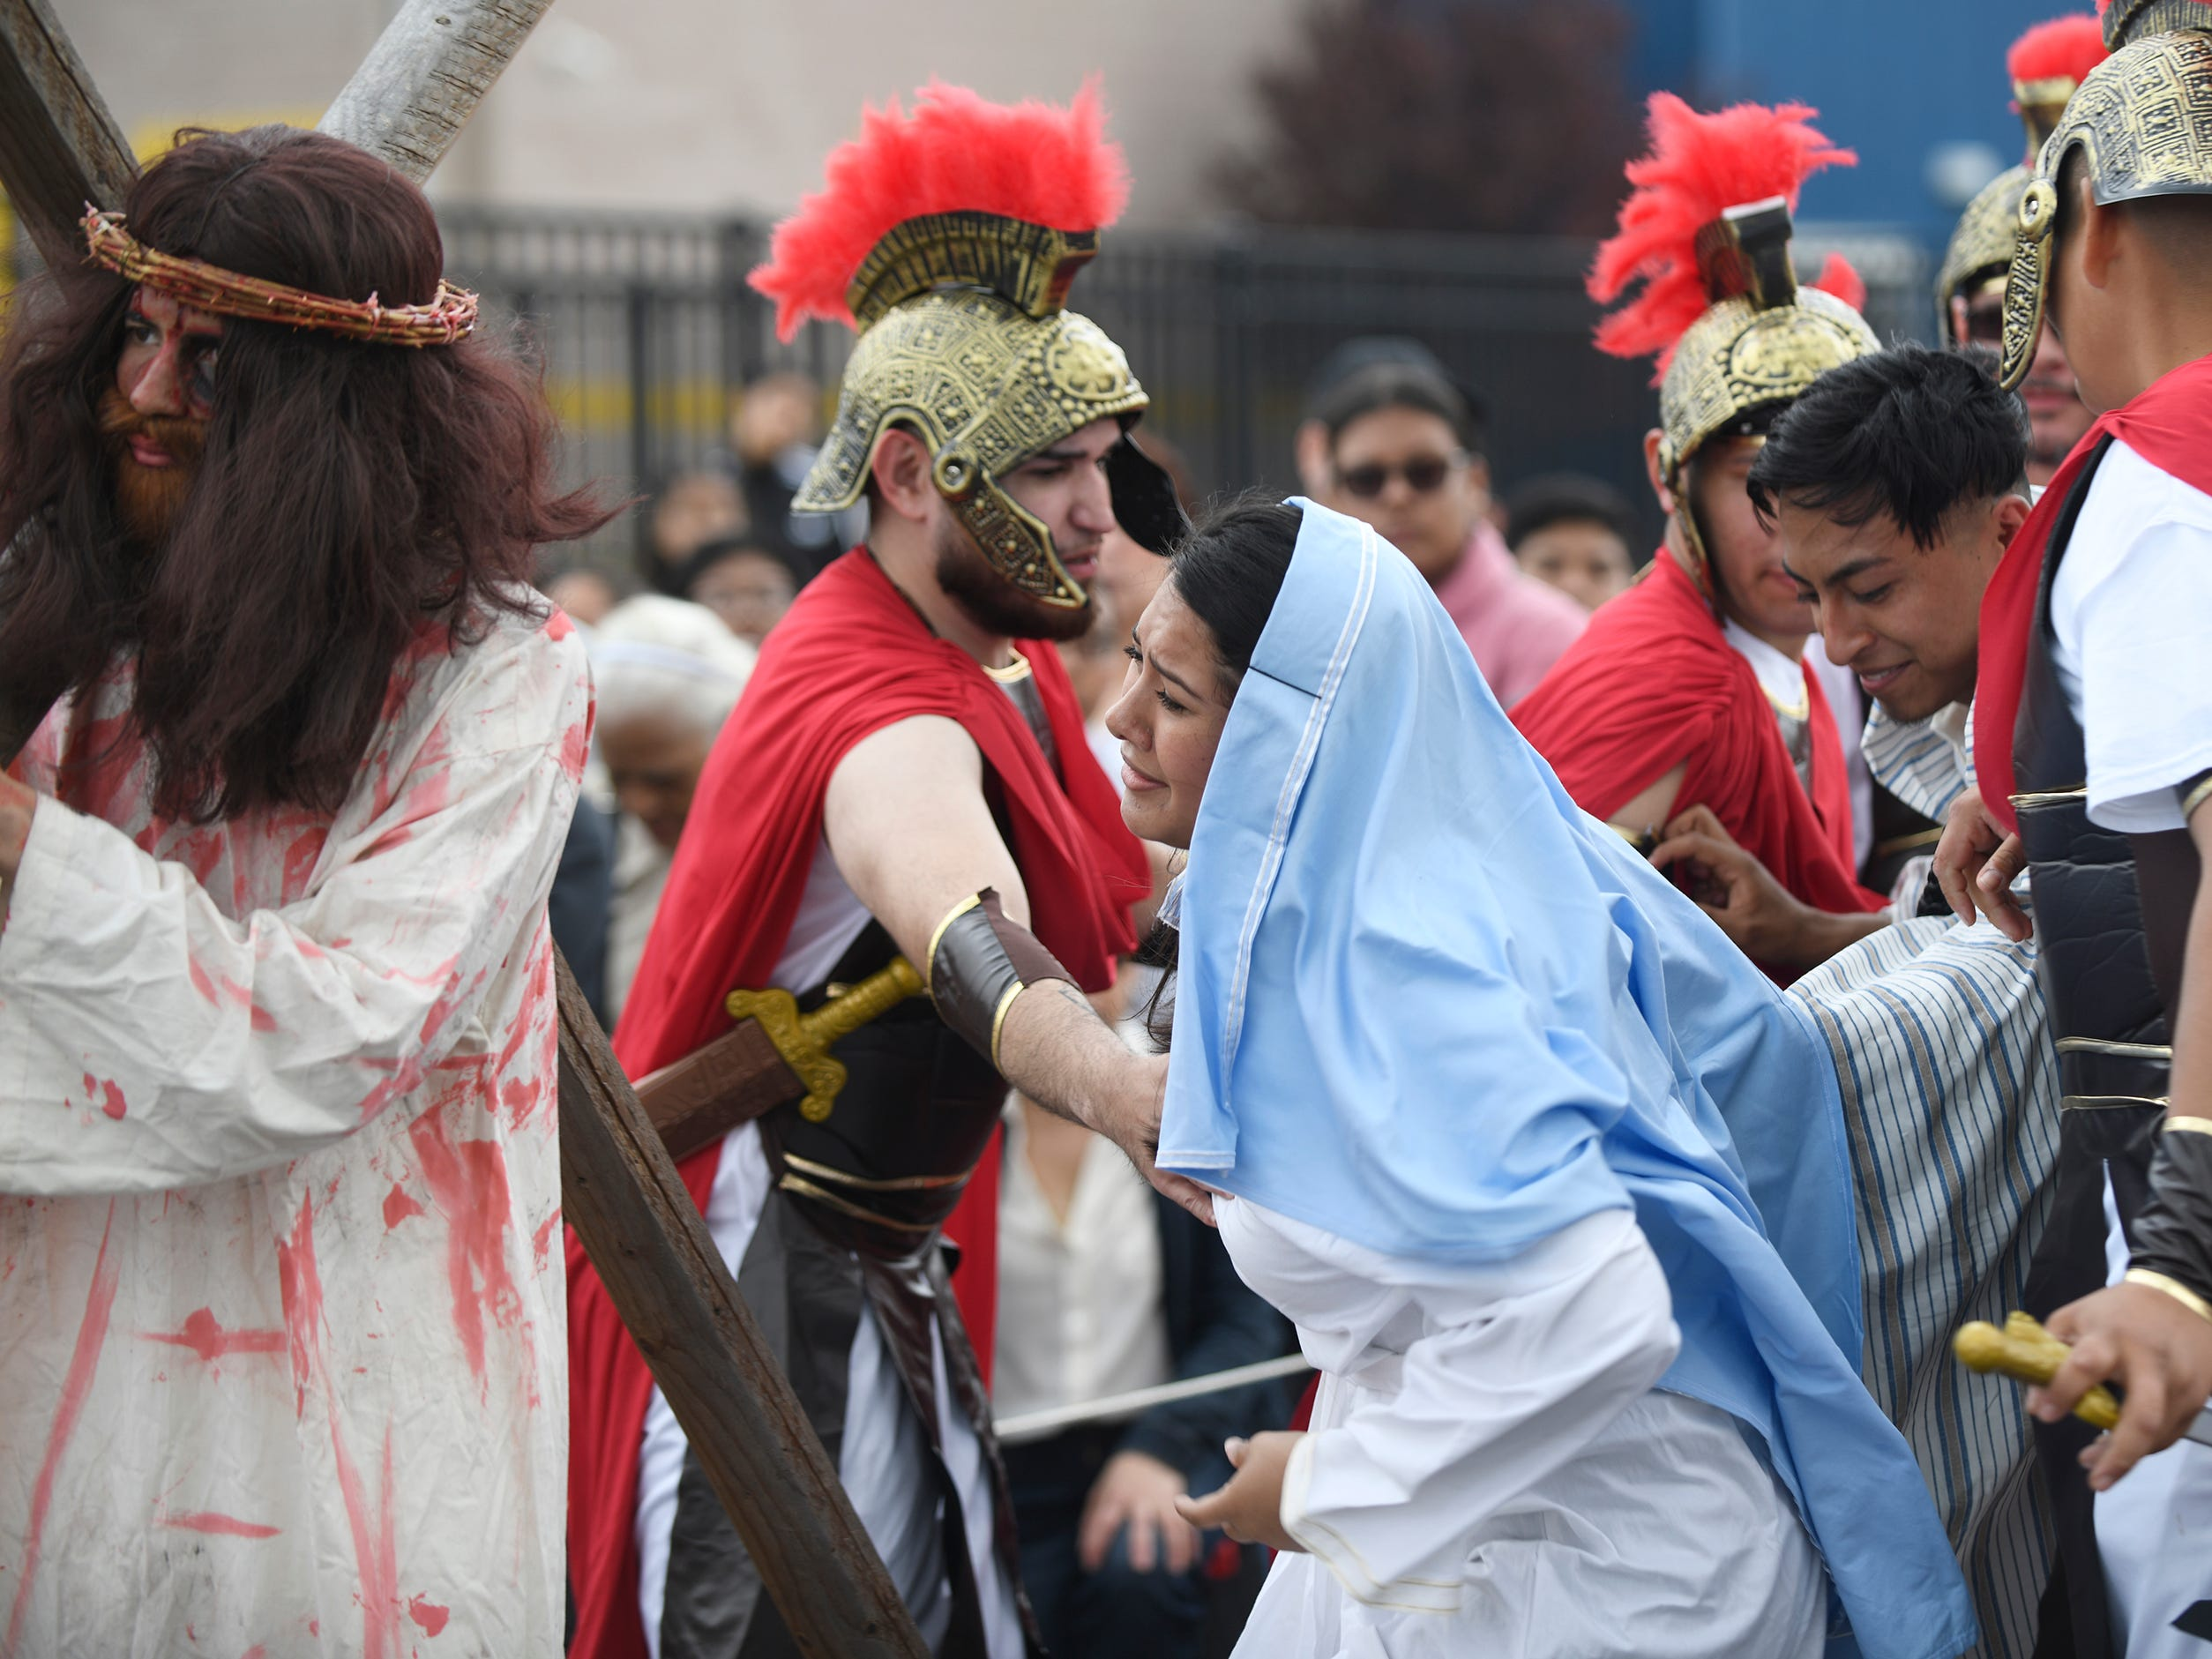 Mary, played by Elizabeth Espinosa, moves towards Jesus, played by Darvin Diaz during the Good Friday procession, hosted by Divine Mercy Parish in Vineland. The performance of the Passion of Christ marched down Almond Street.